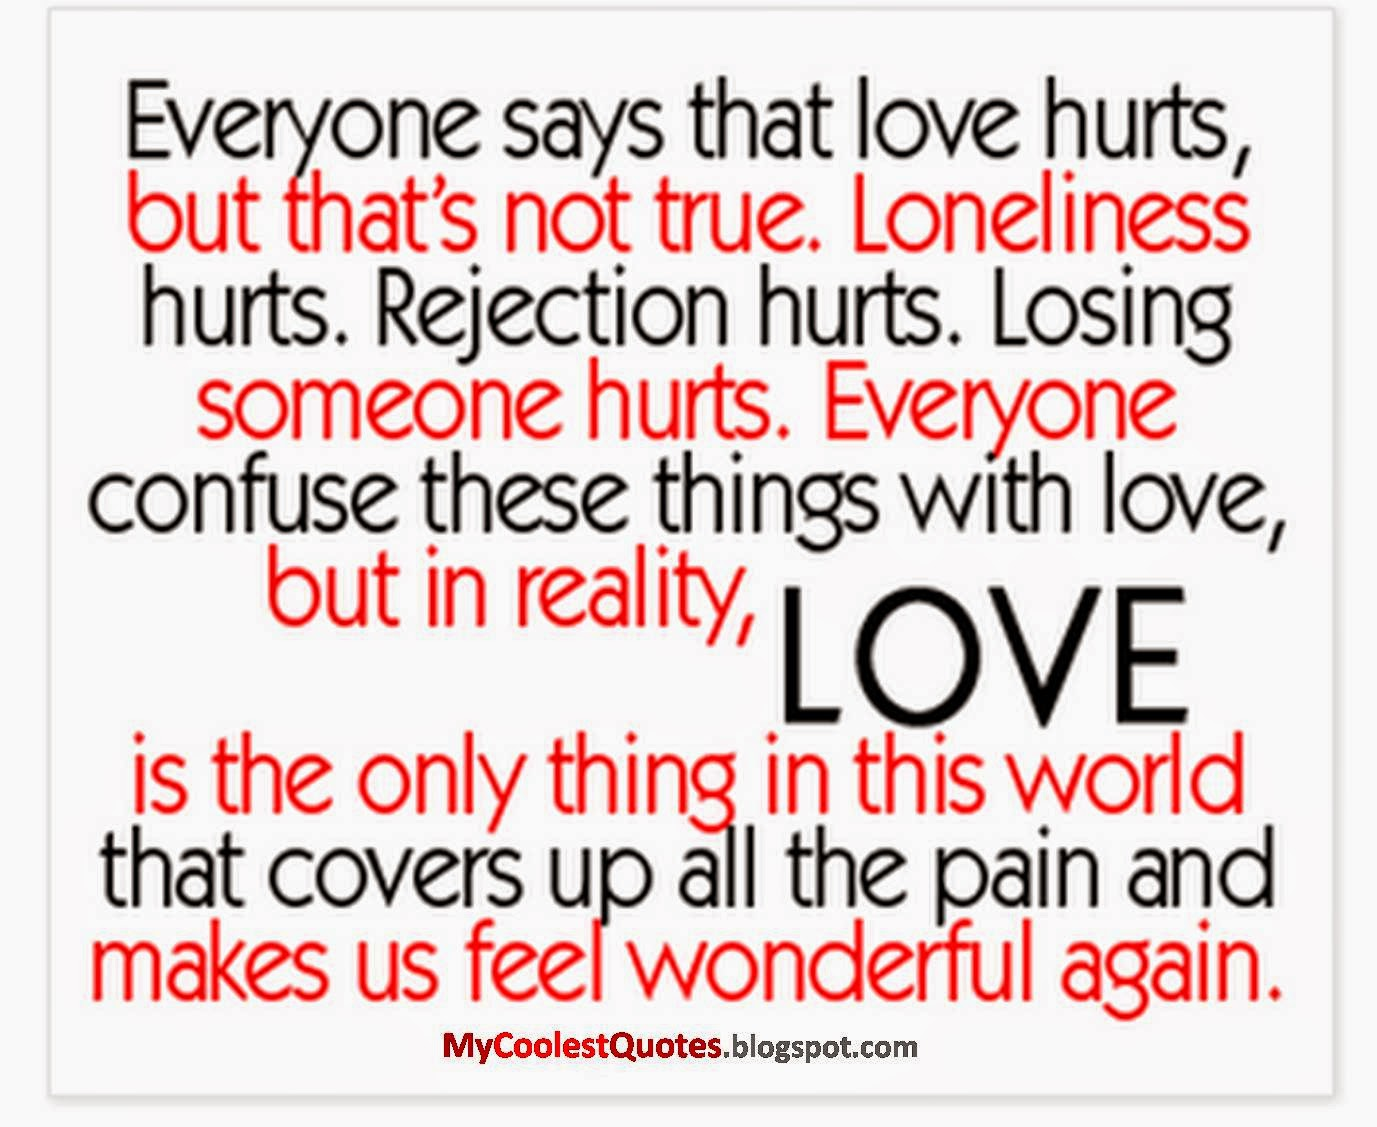 best quotes for everyday coolest quotes does love really hurt